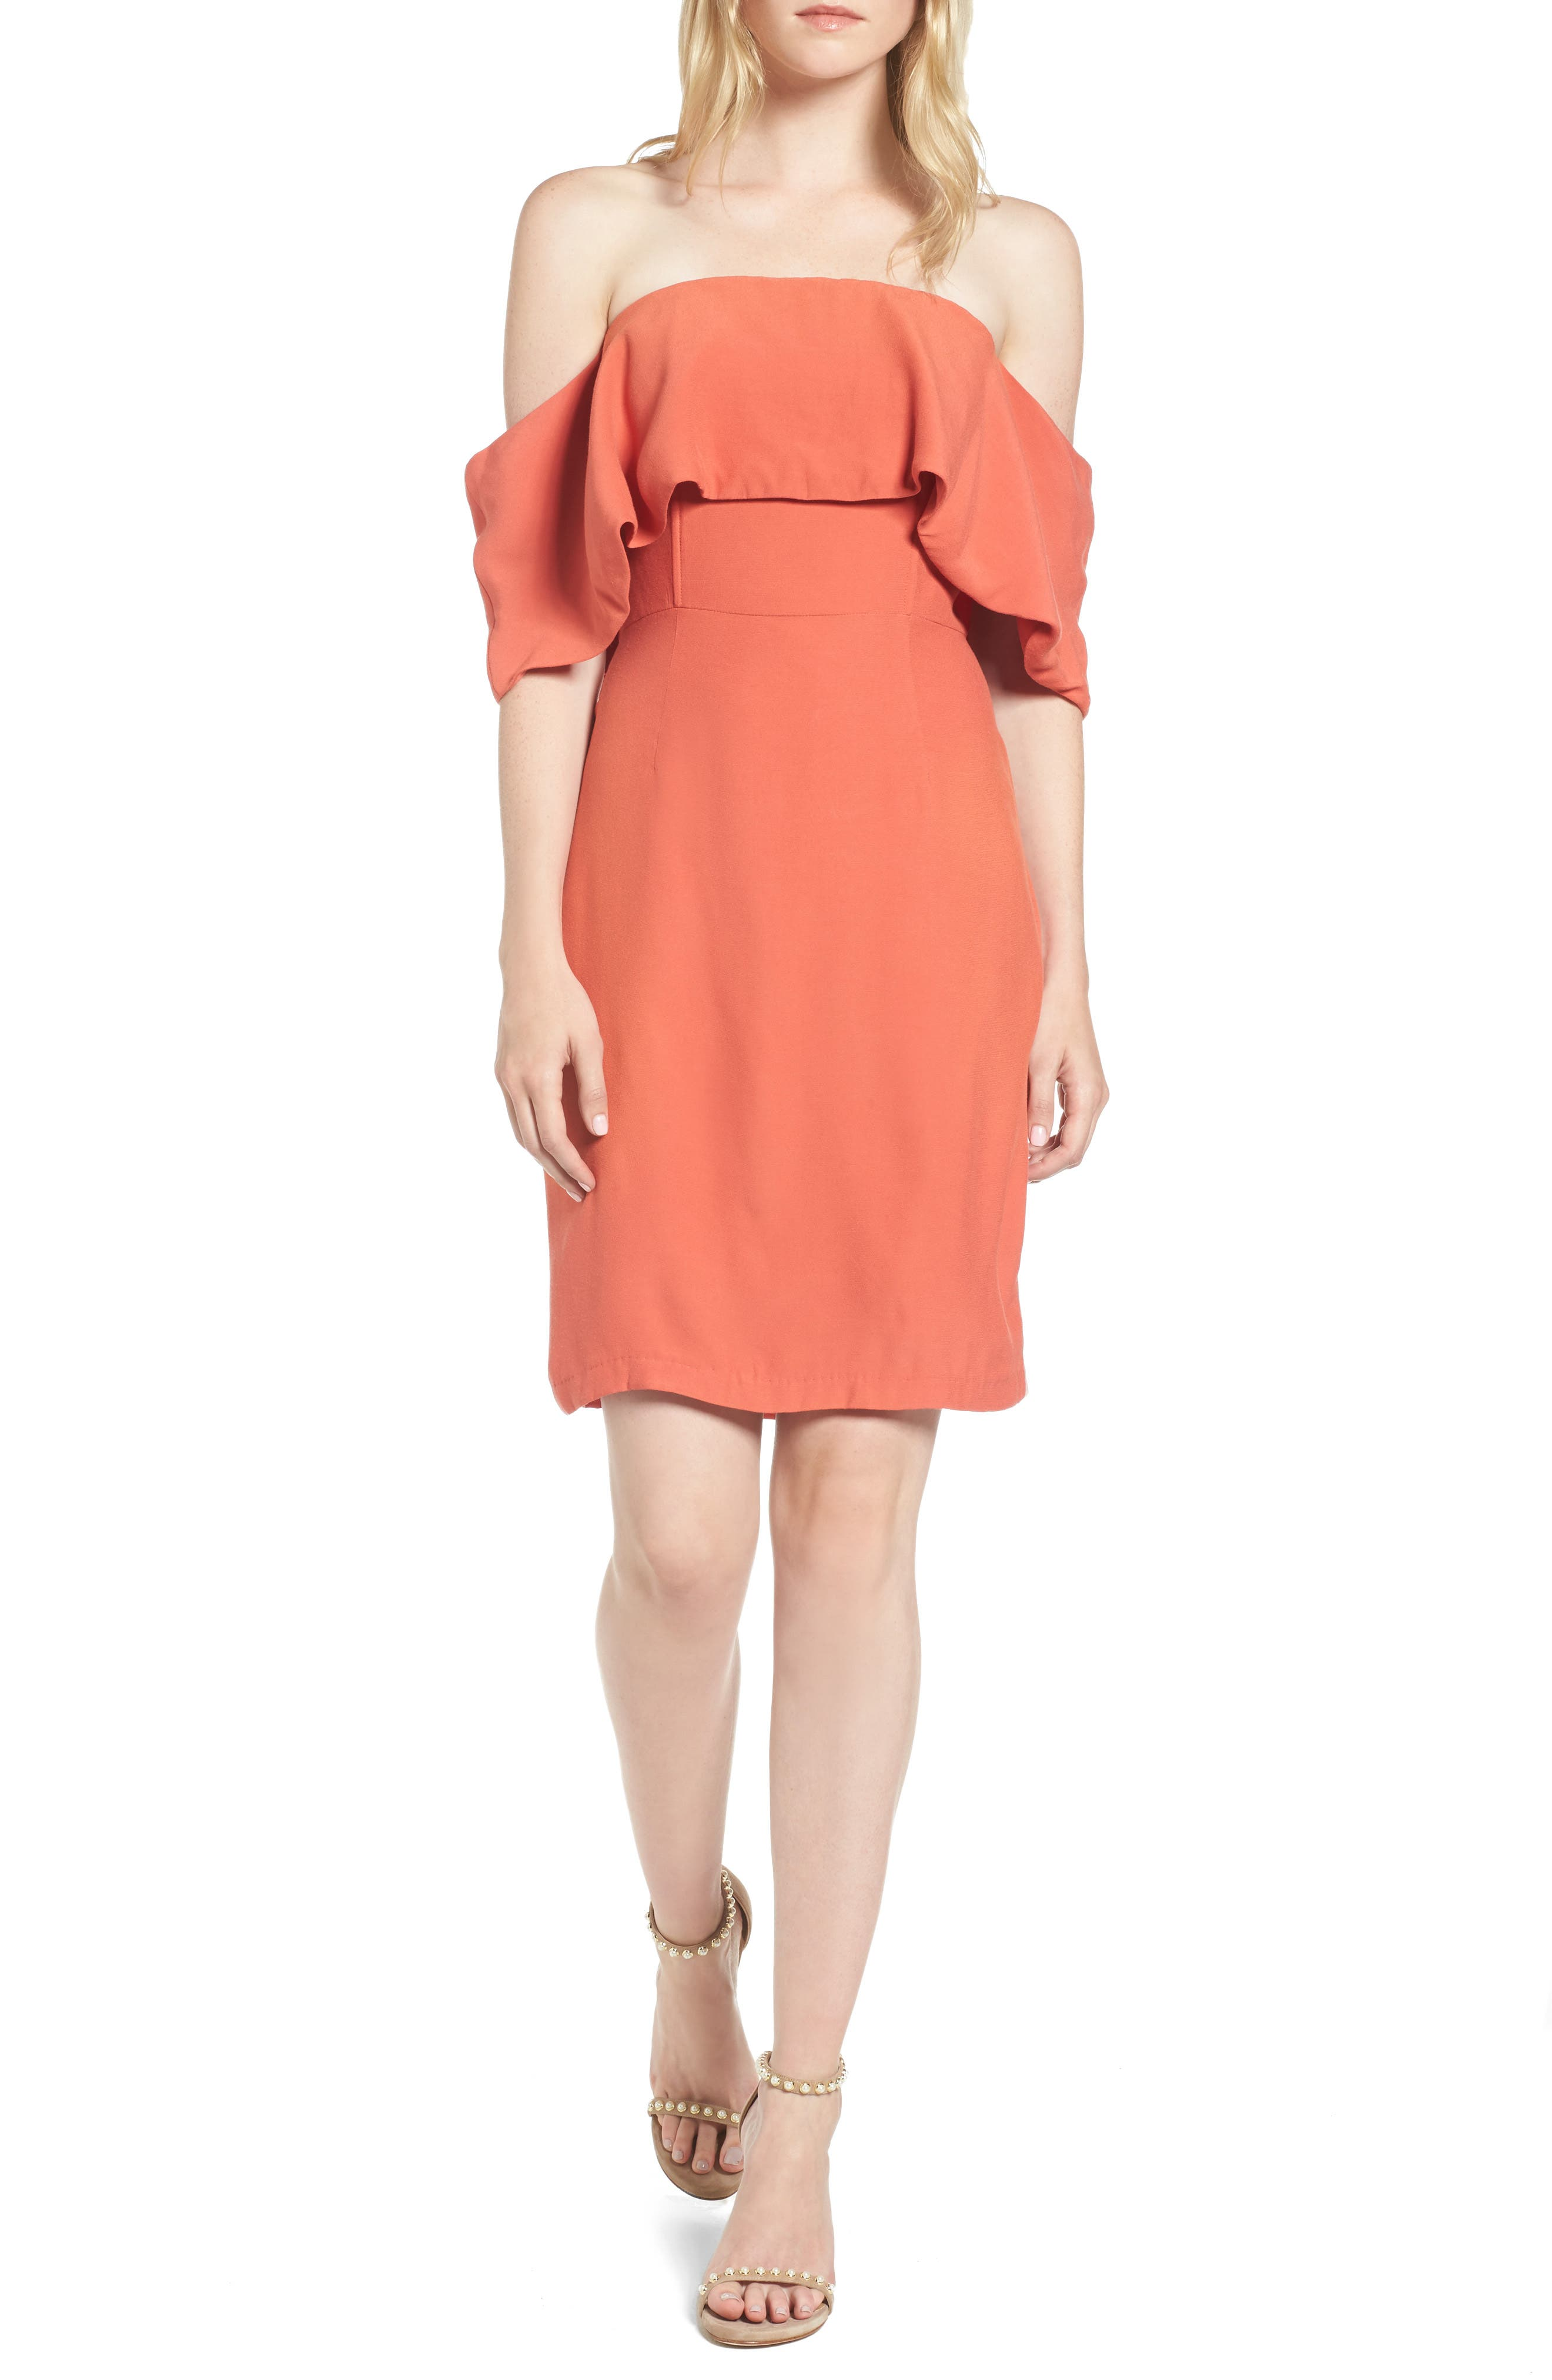 Rudy Off the Shoulder Shift Dress,                         Main,                         color, Persimmon Red